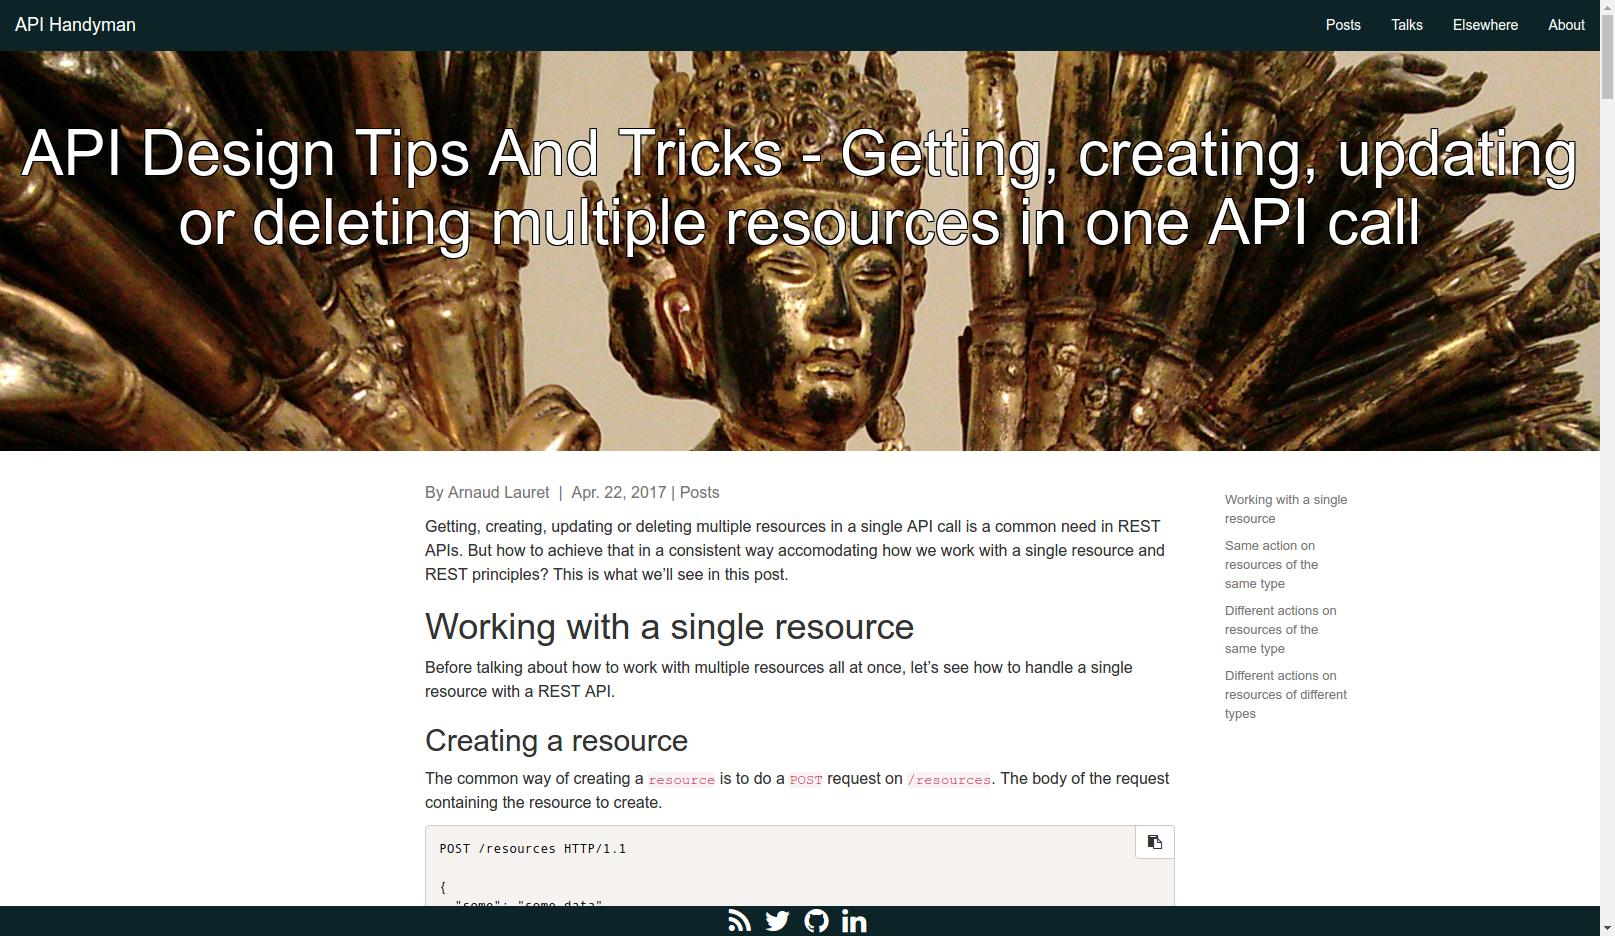 API Design Tips And Tricks - Getting, creating, updating or deleting multiple resources in one API call